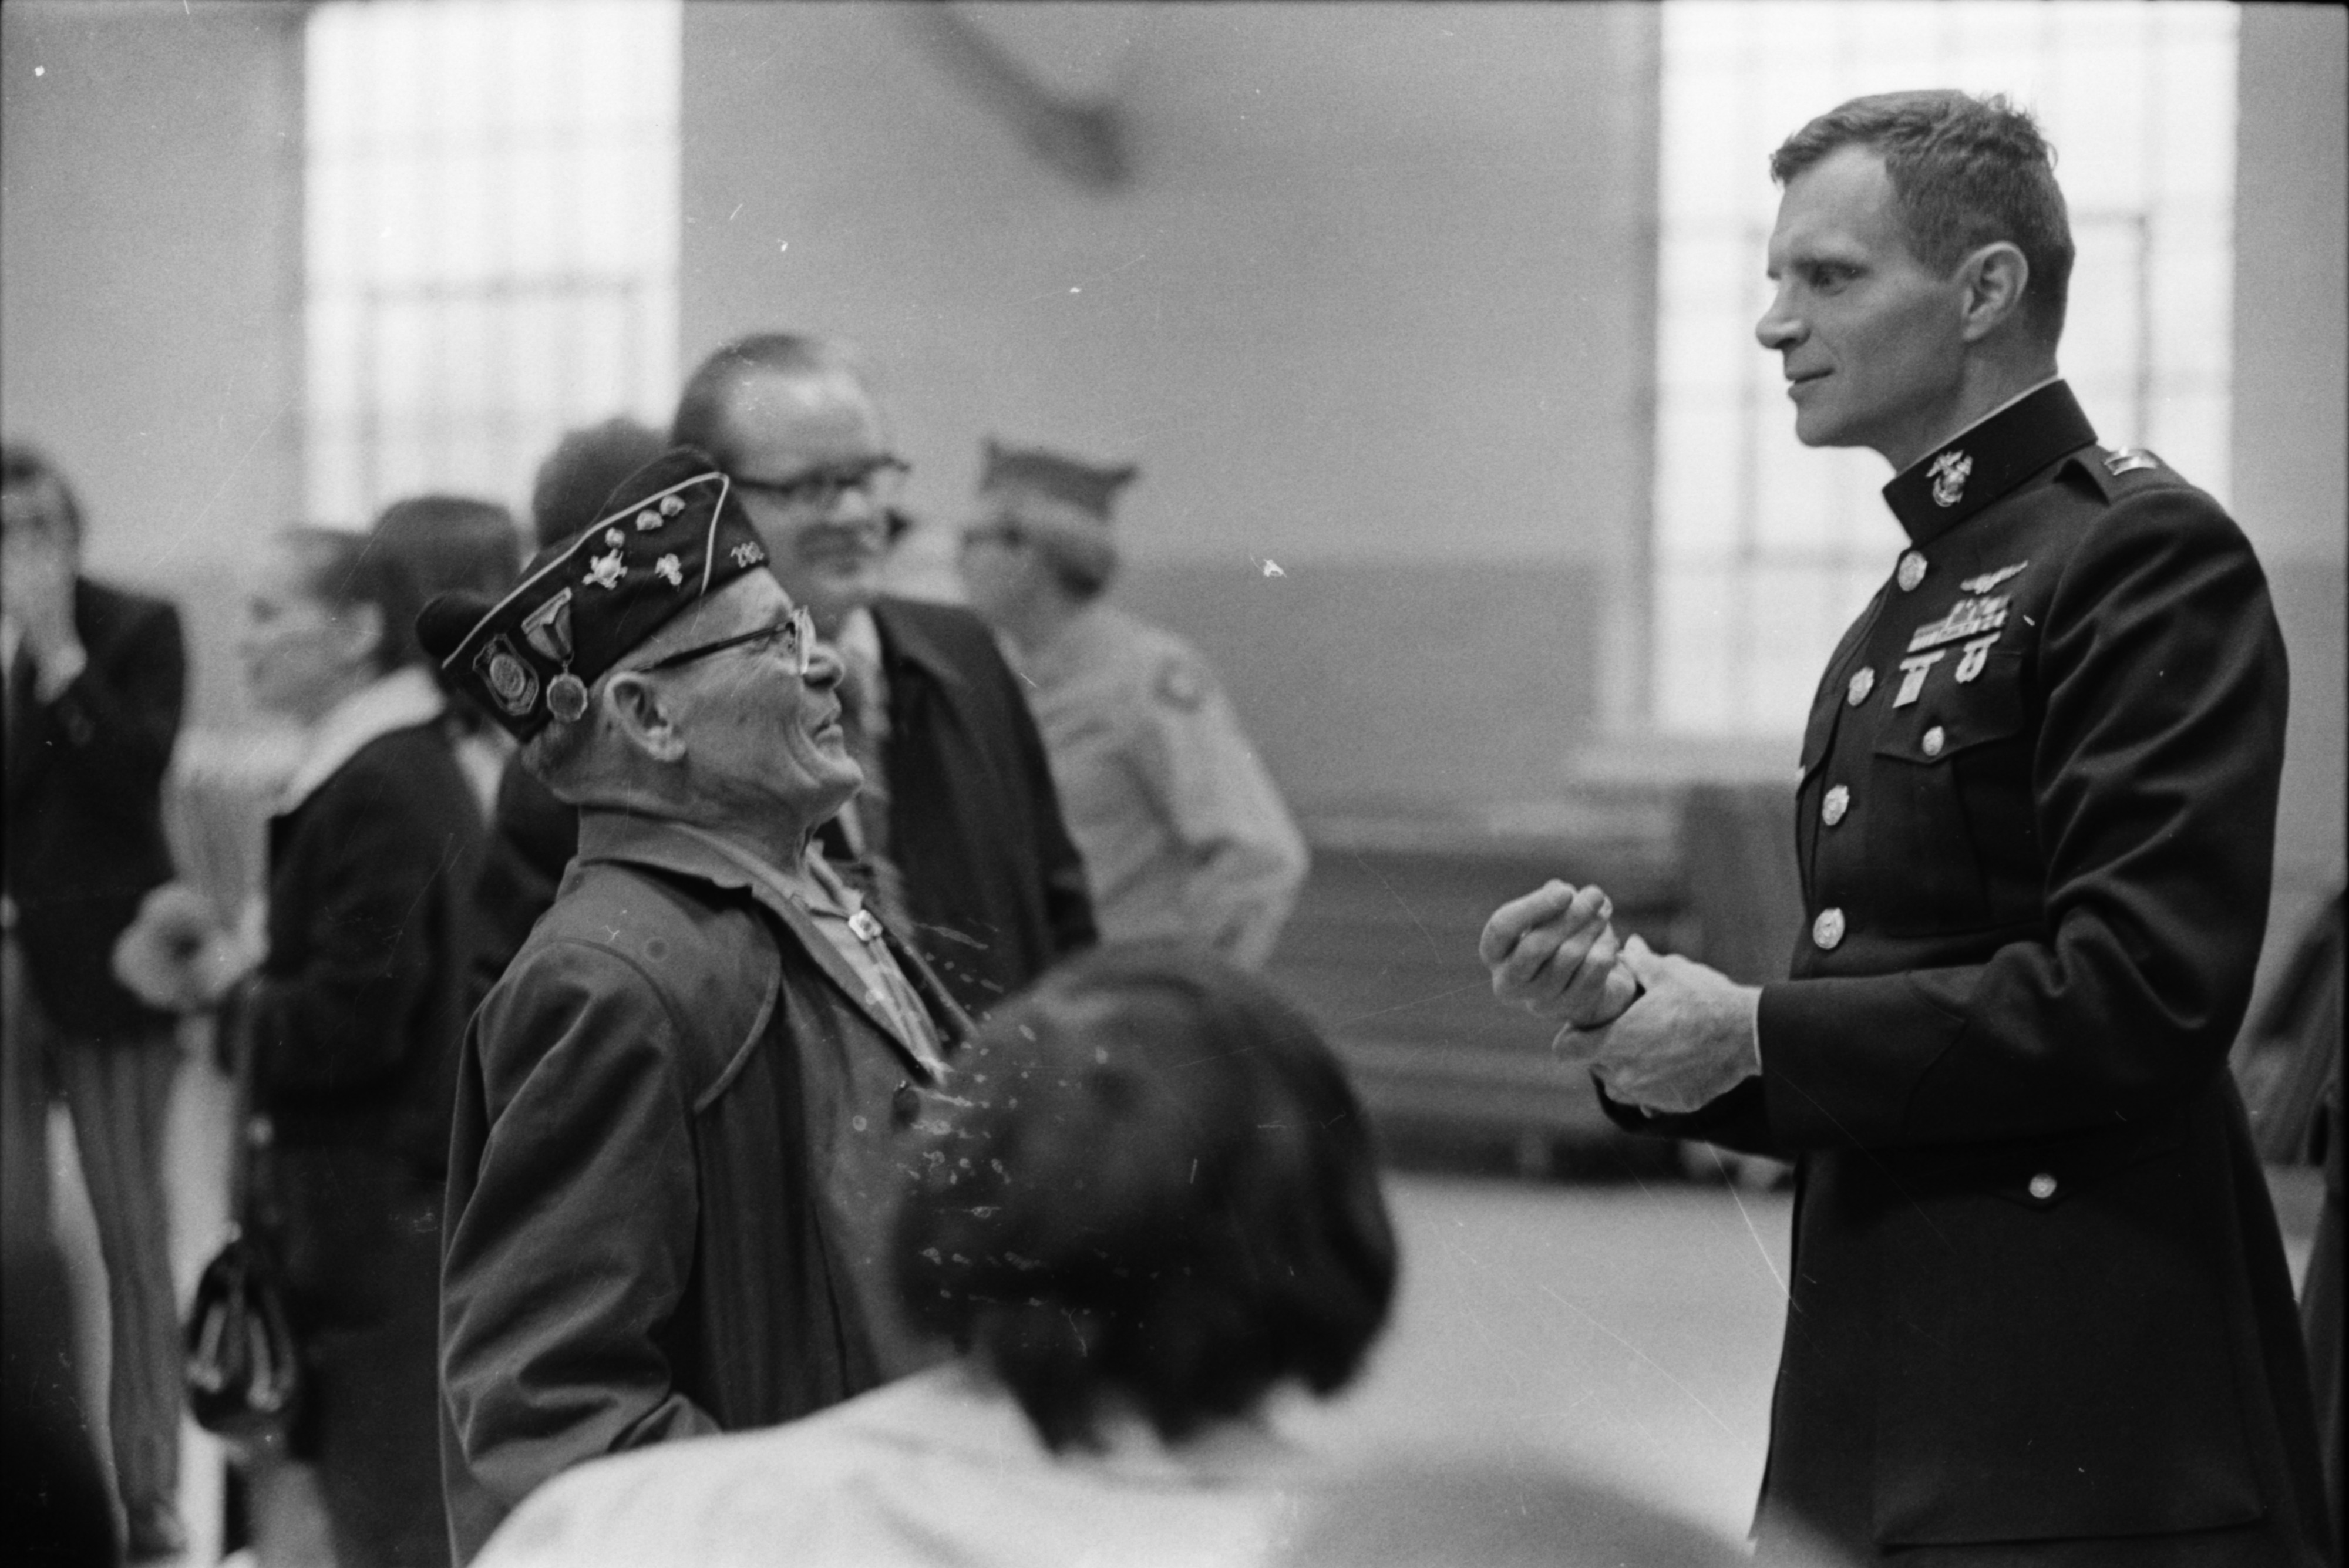 Capt. James Warner, former POW, at National Guard Armory reception, April 1973 image